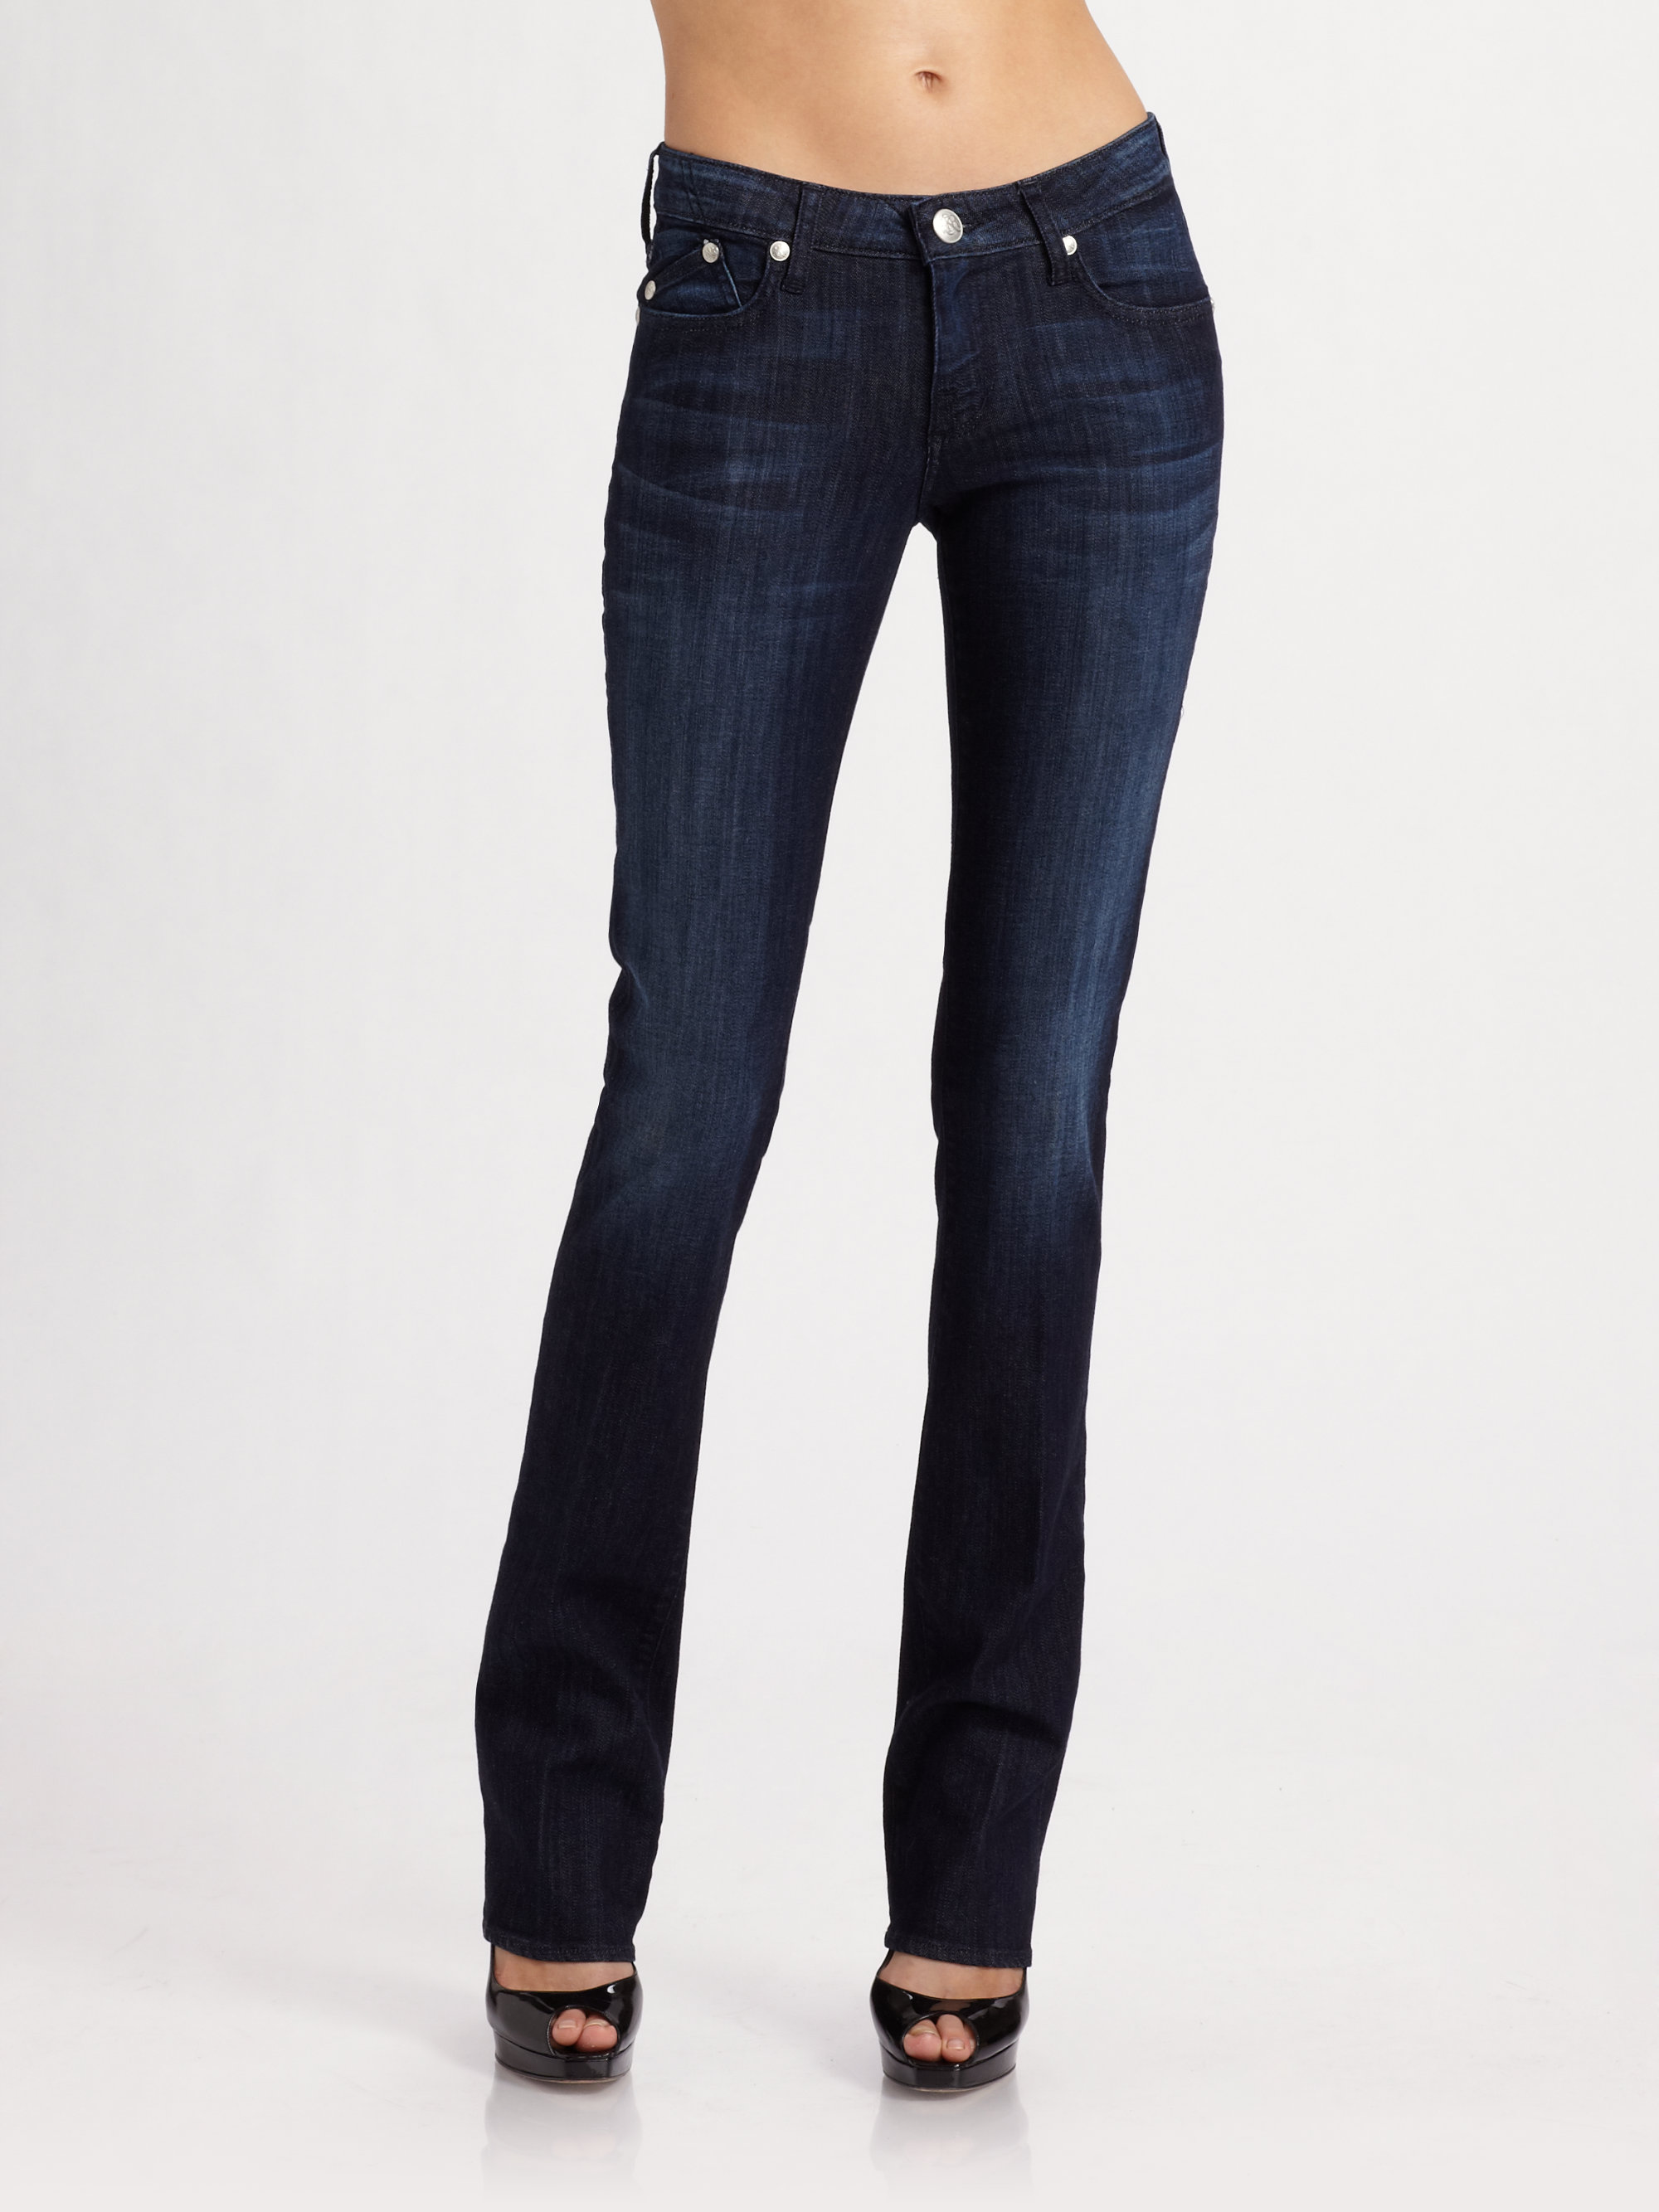 Rock Amp Republic Abigail Baby Bootcut Jeans In Blue Emerge